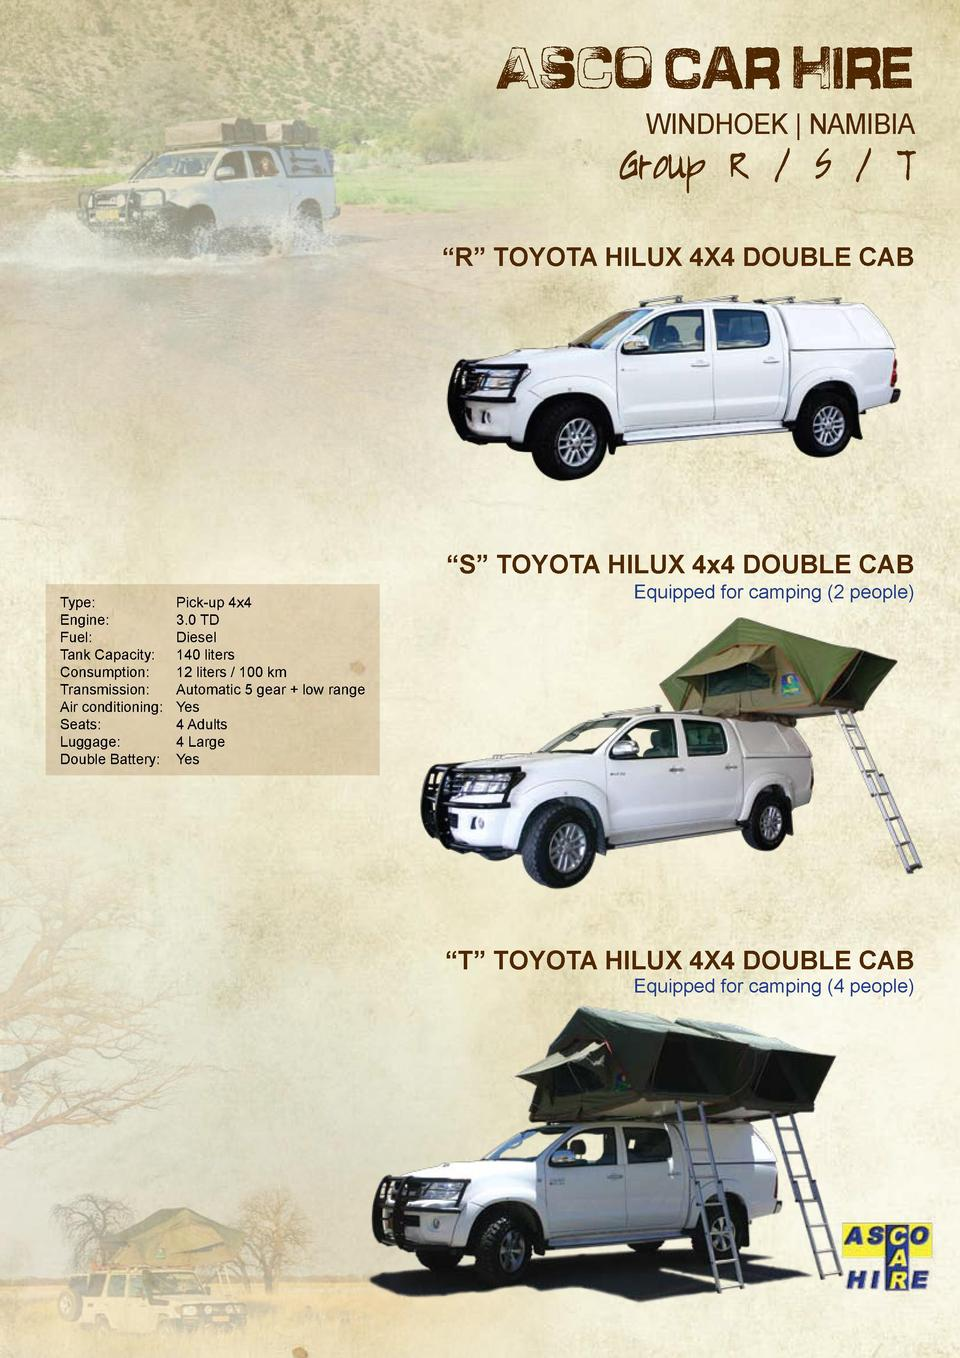 Asco Car Hire WINDHOEK   NAMIBIA  Group R   S   T     R    Toyota Hilux 4x4 DOUBLE Cab     S    TOYOTA HILUX 4x4 DOUBLE CA...